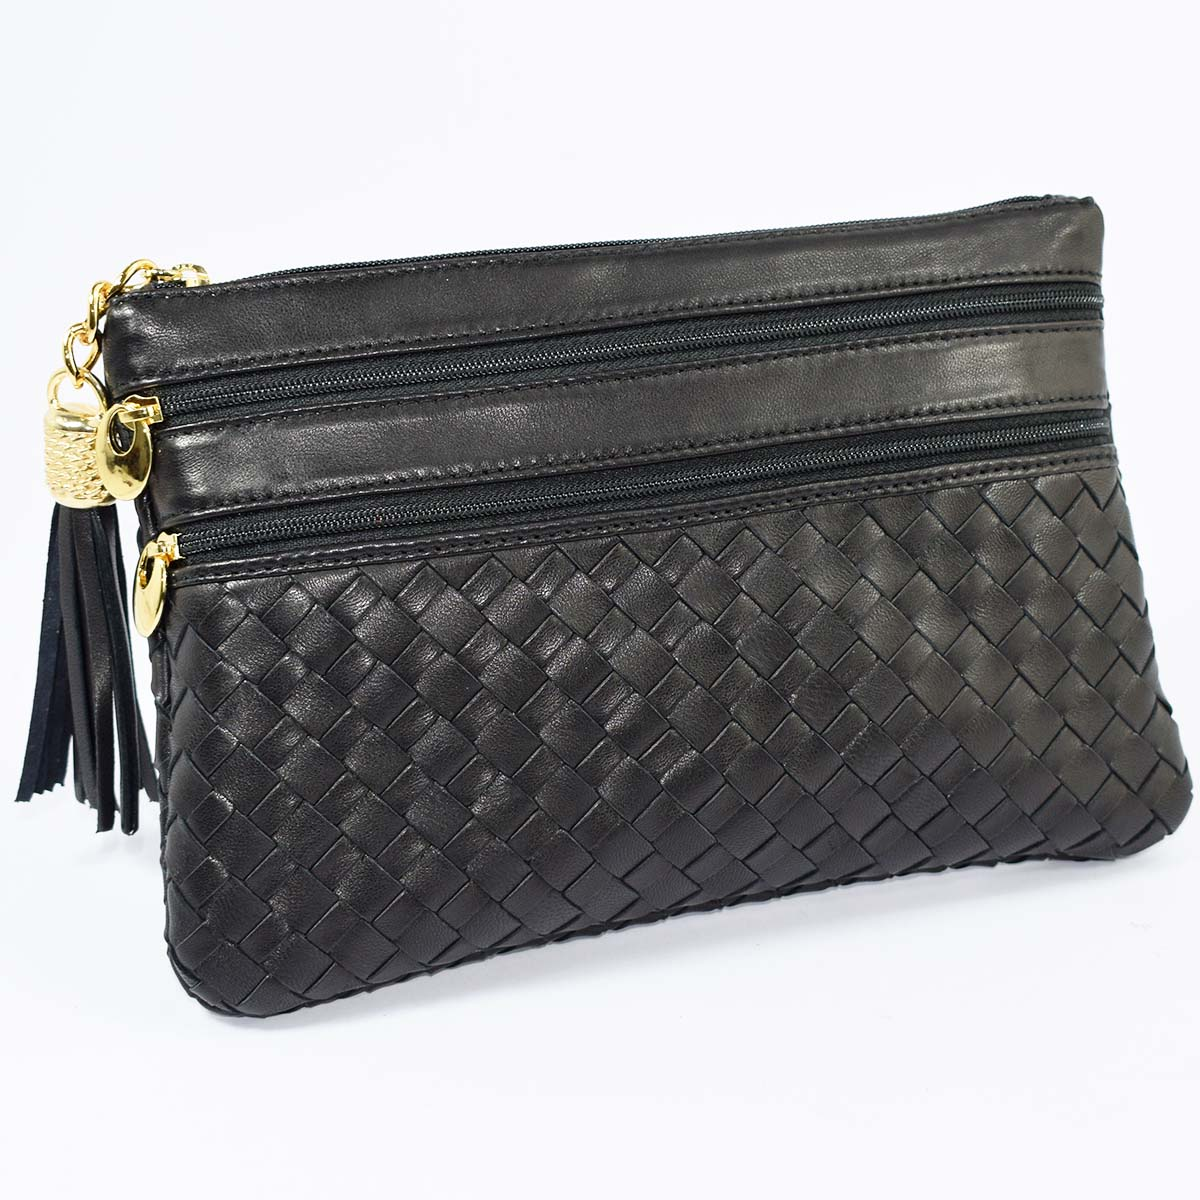 1732 cross body organizer medium by Bottega Fiorentina